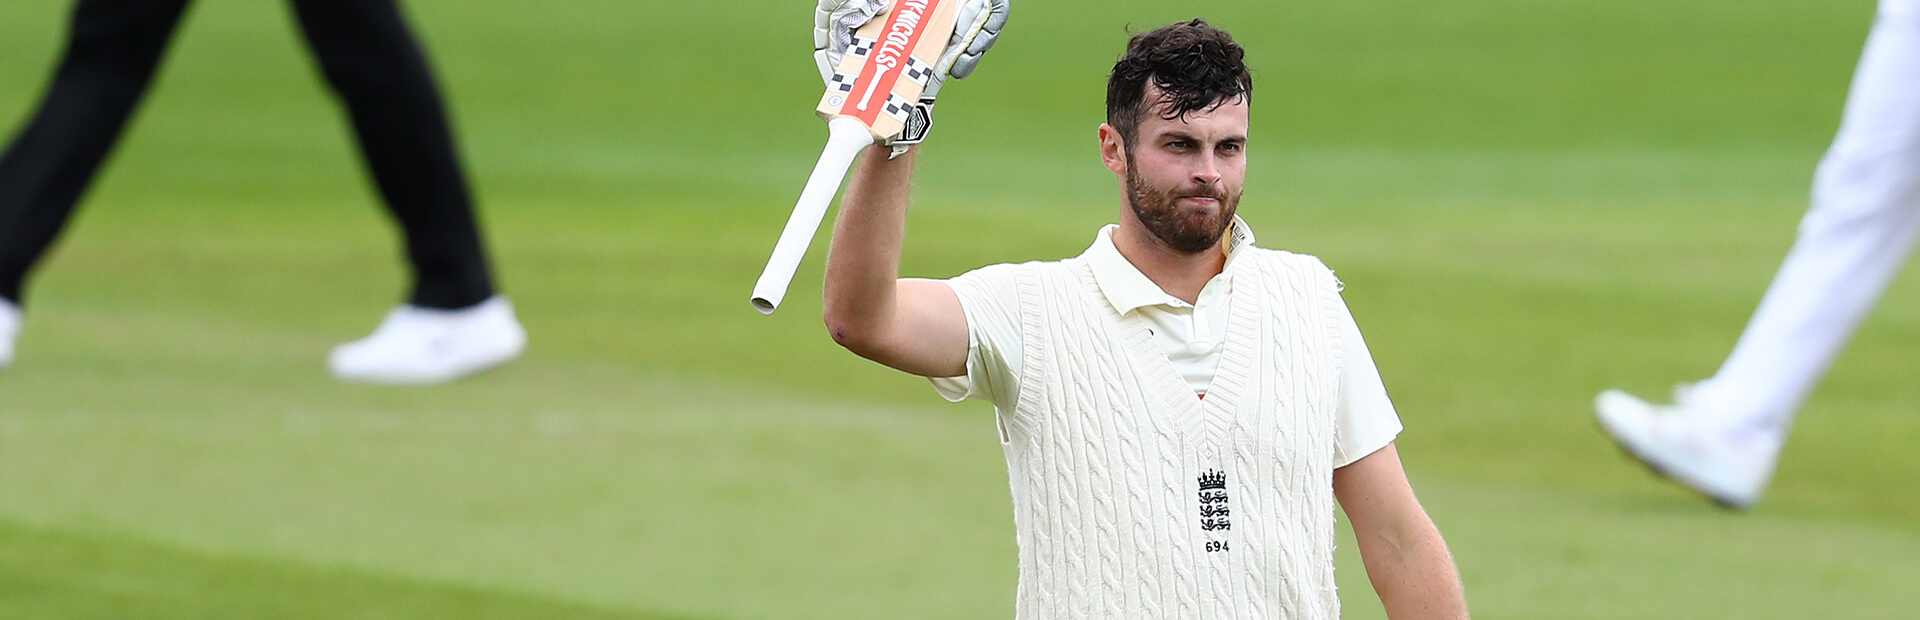 Sibley named in Wisden Cricketers' of the Year